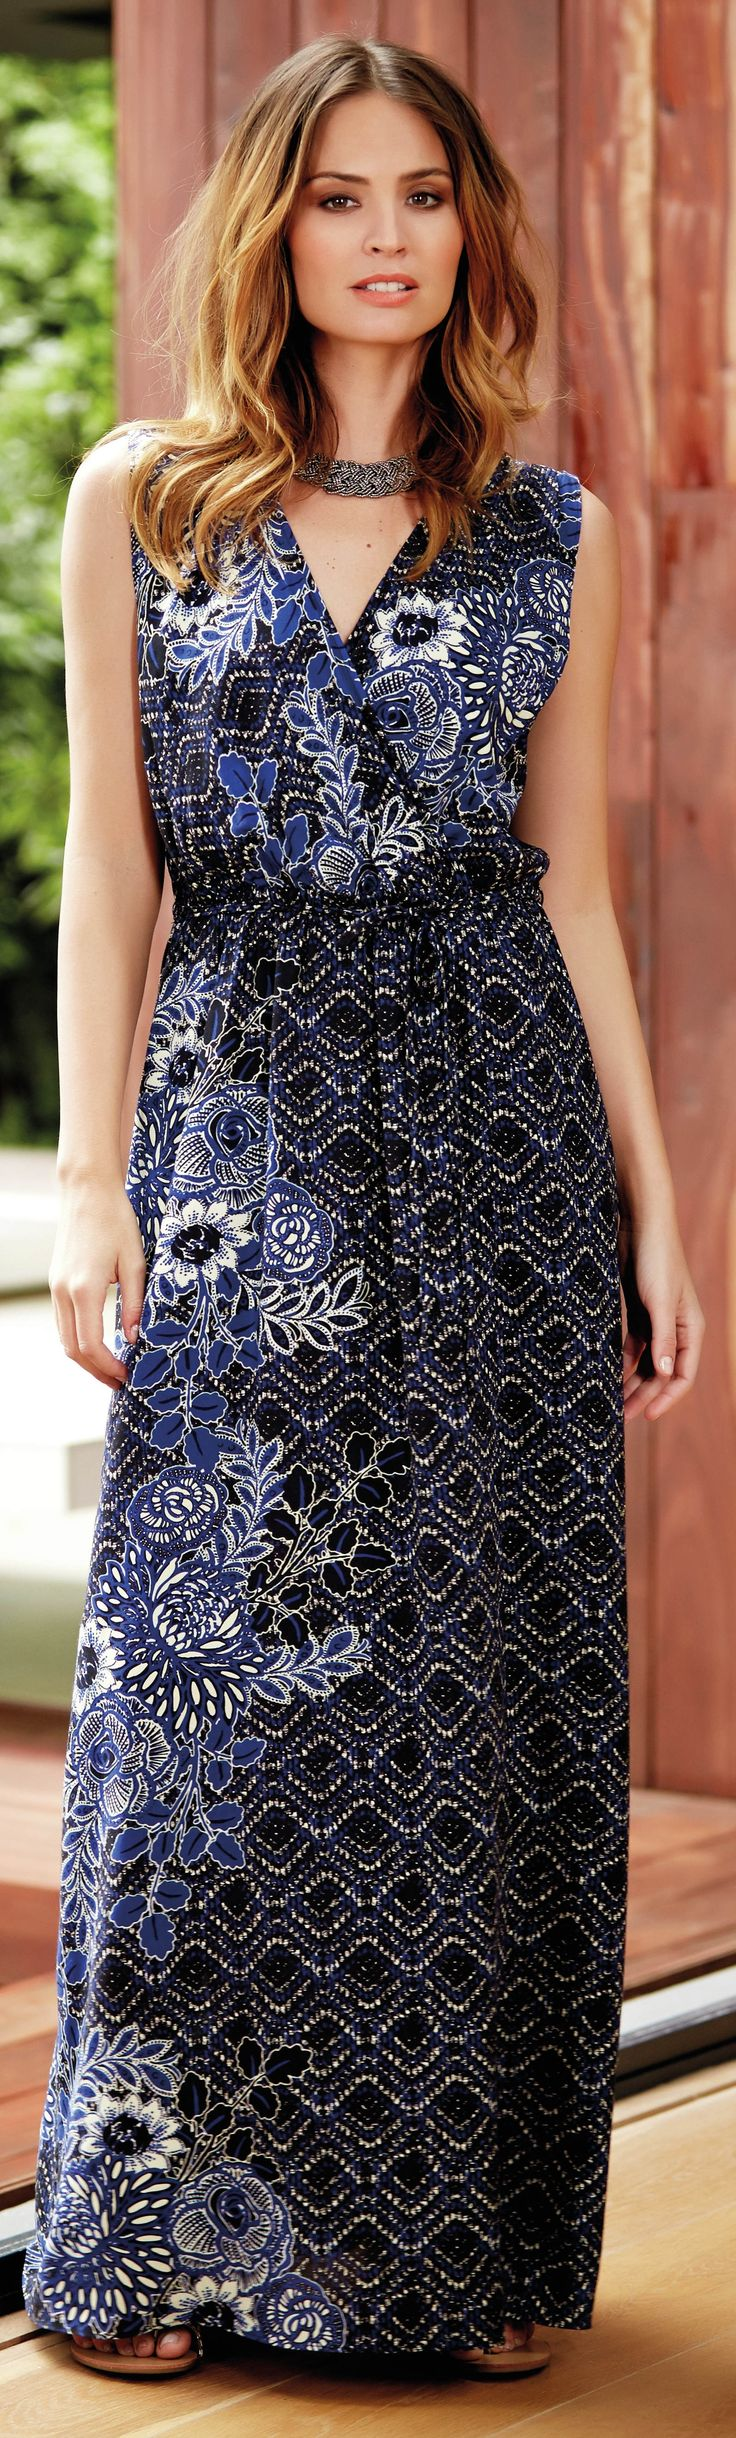 144 best images about * SPRING FASHION for WOMEN OVER 40 ...